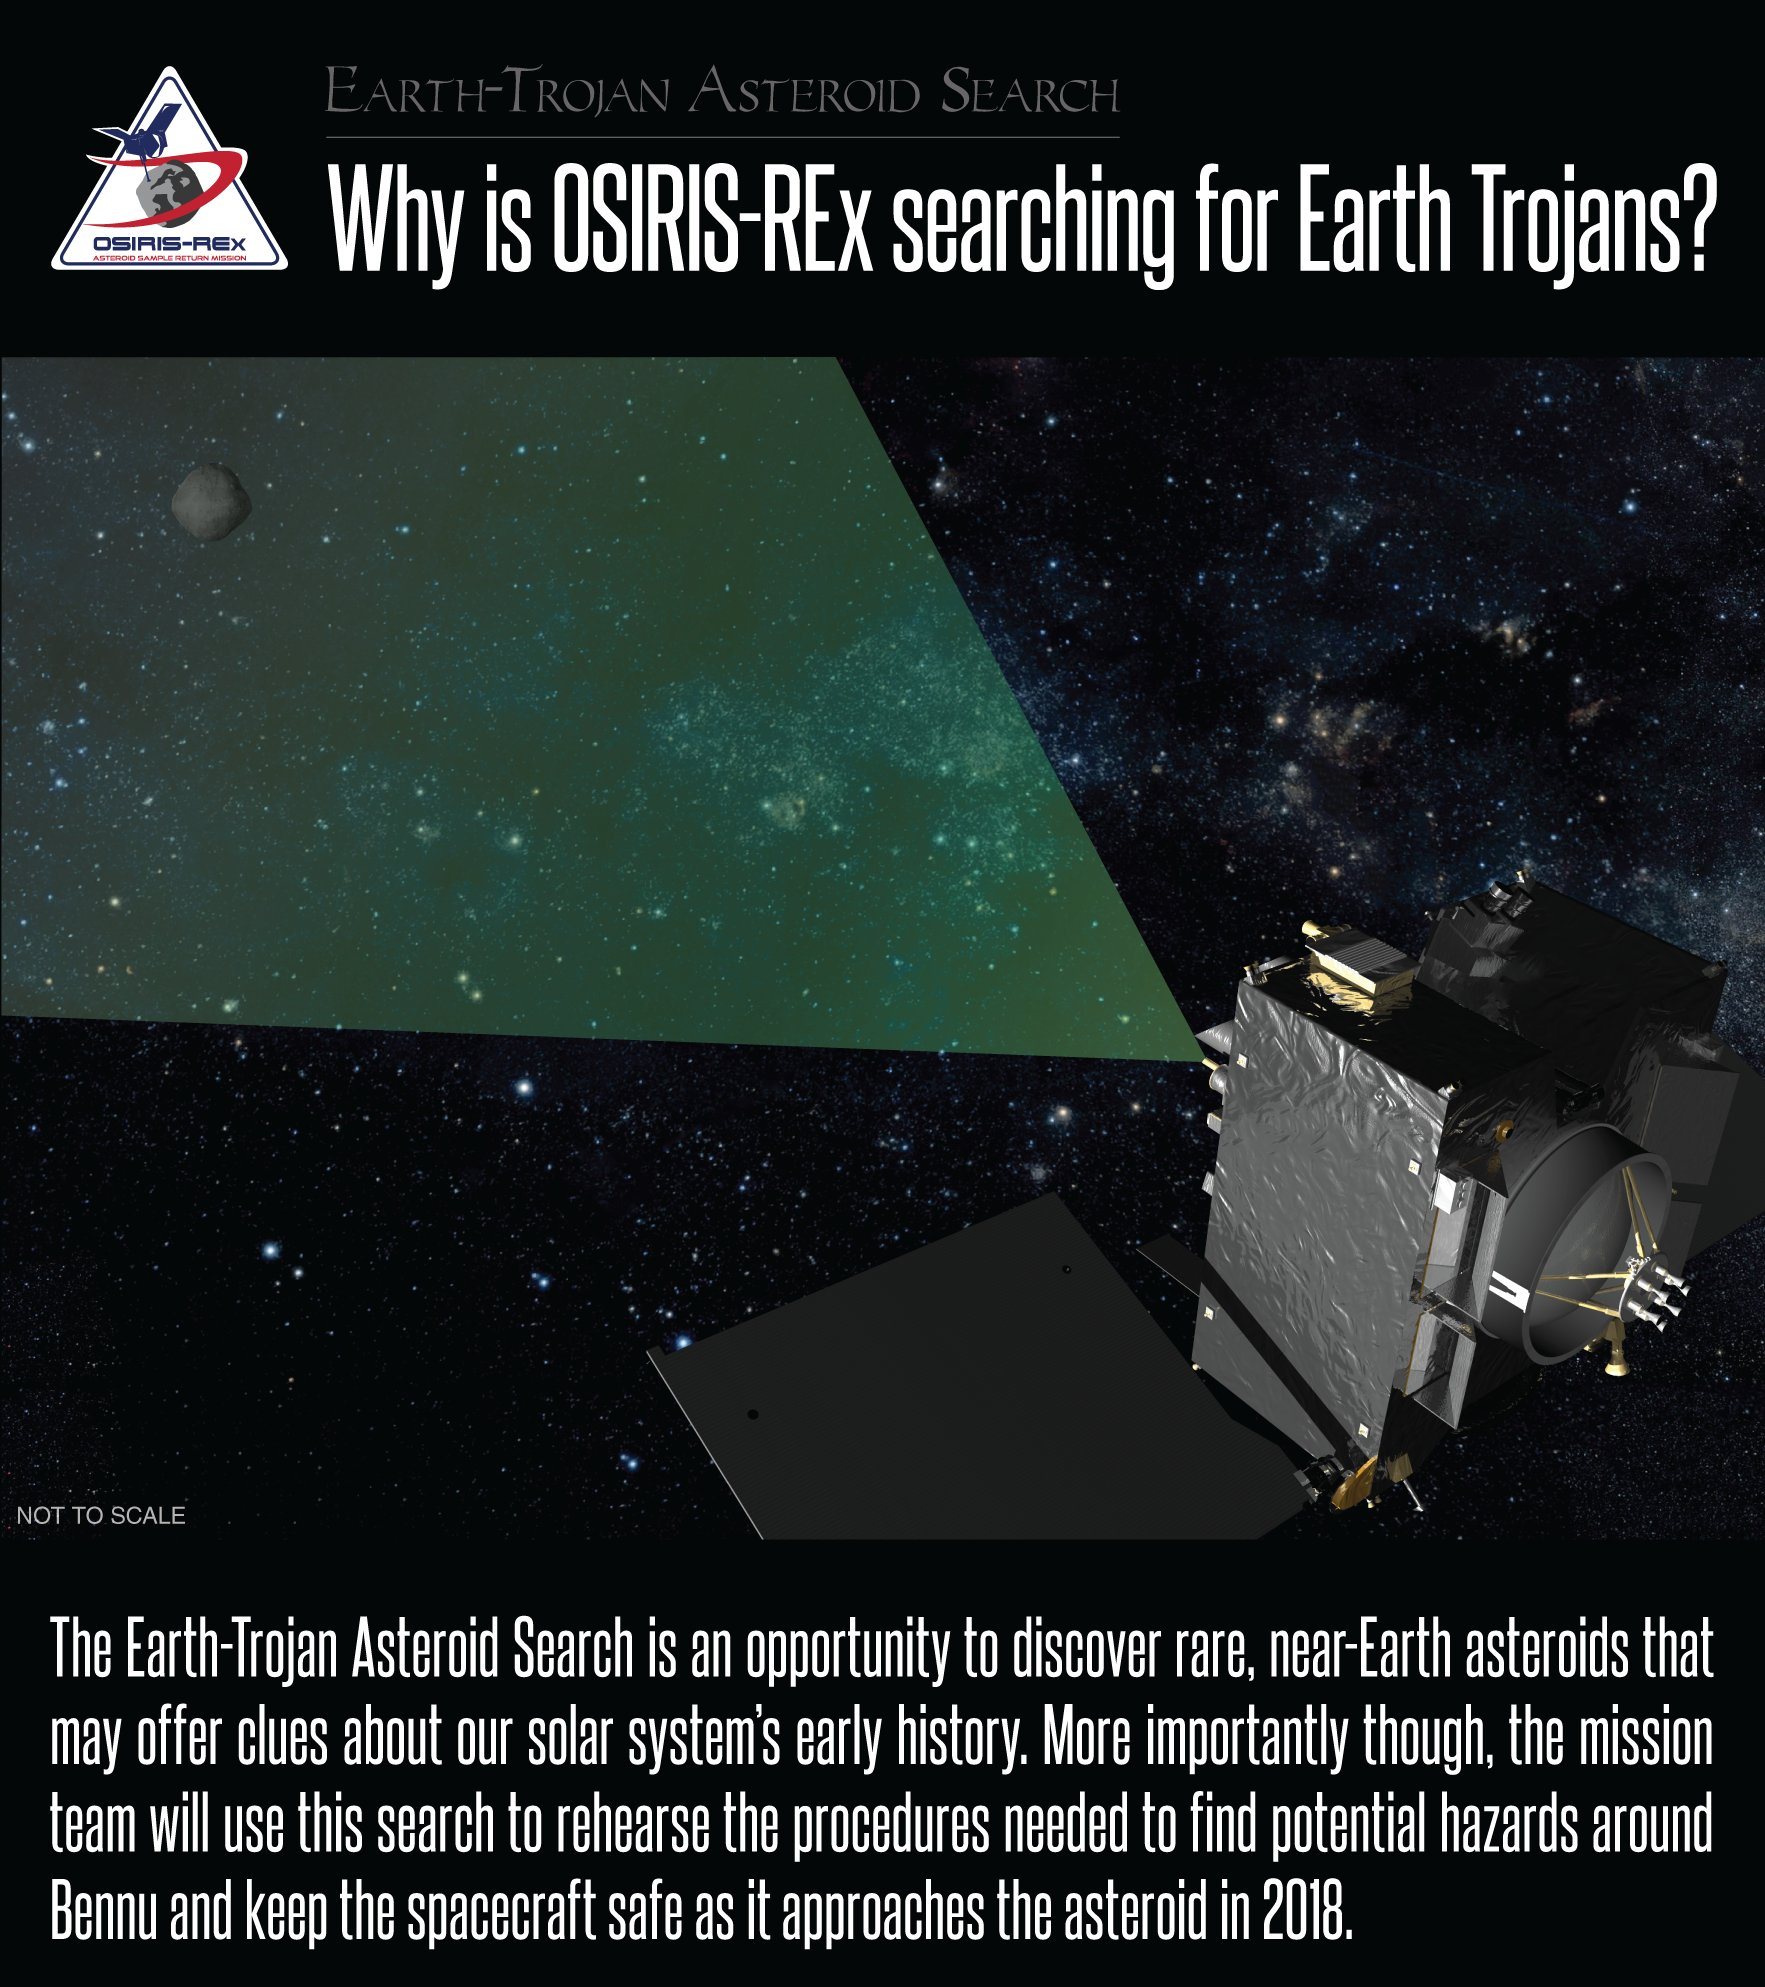 Why is OSIRIS-REx searching for Earth Trojans?